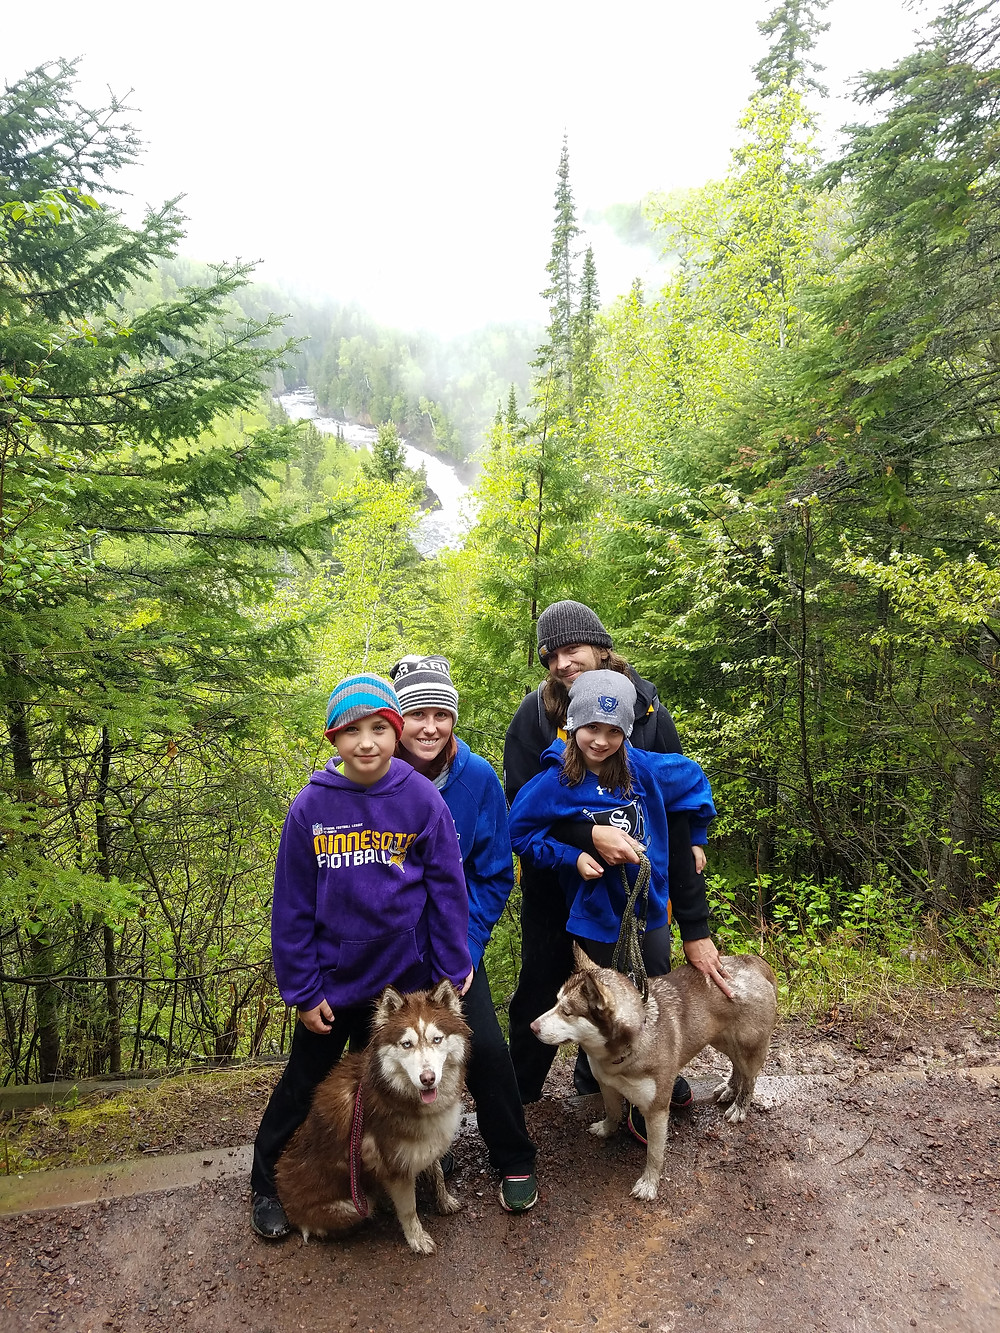 Cold and wet but still smiles at Devil's Kettle